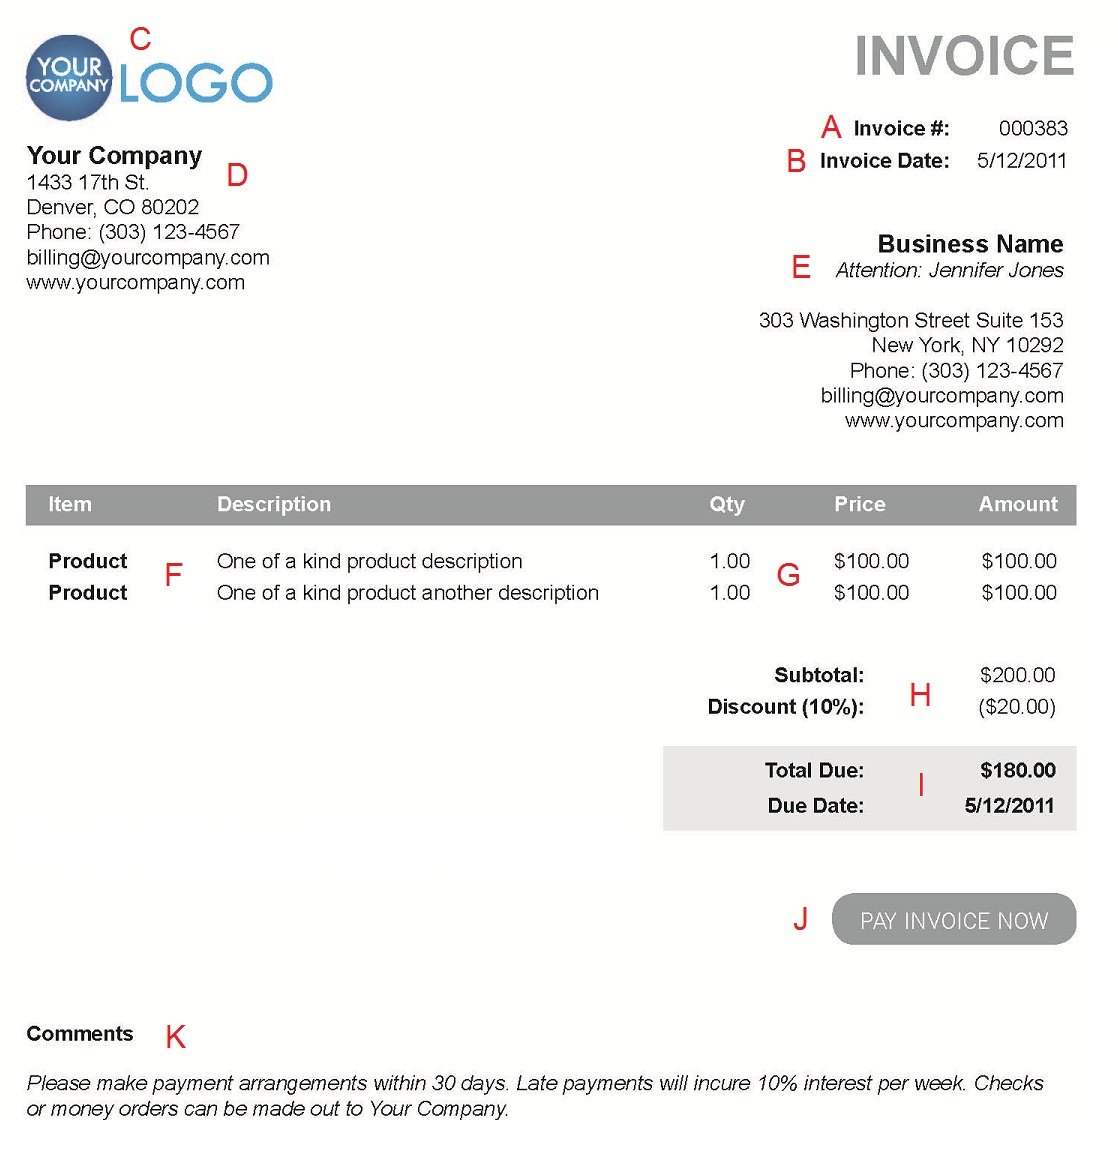 Shopdesignsus  Gorgeous The  Different Sections Of An Electronic Payment Invoice With Inspiring A  With Charming Kelley Blue Book Dealer Invoice Price Also Invoice Template Download Free In Addition Cash Invoice And Cool Invoices As Well As Dhl Invoice Form Additionally How To Make An Invoice In Google Docs From Paysimplecom With Shopdesignsus  Inspiring The  Different Sections Of An Electronic Payment Invoice With Charming A  And Gorgeous Kelley Blue Book Dealer Invoice Price Also Invoice Template Download Free In Addition Cash Invoice From Paysimplecom